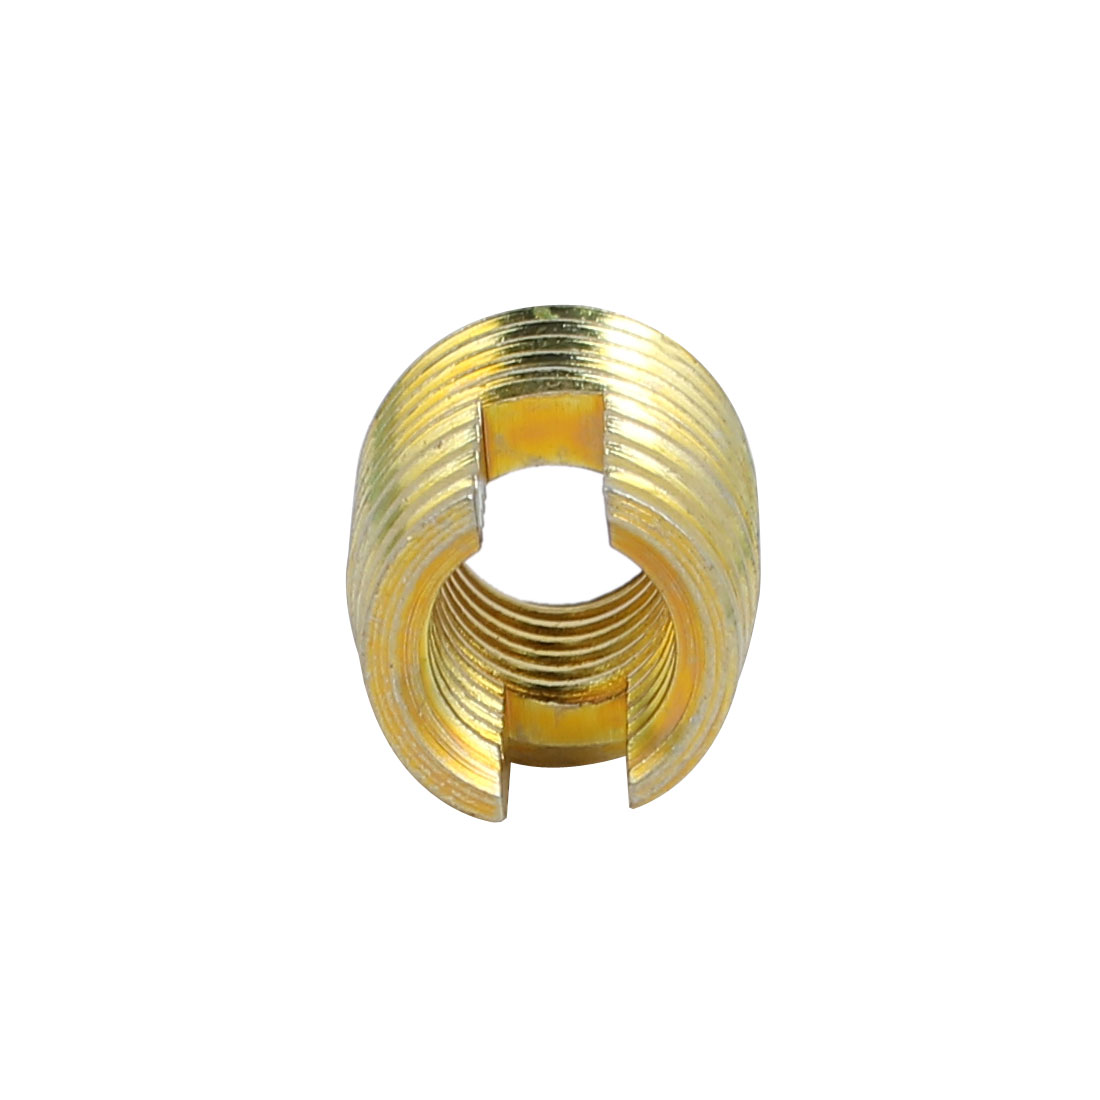 Unique Bargains M8x15mm Carbon Steel Zinc Plated Self Tapping Slotted Thread Insert 10pcs - image 1 of 3